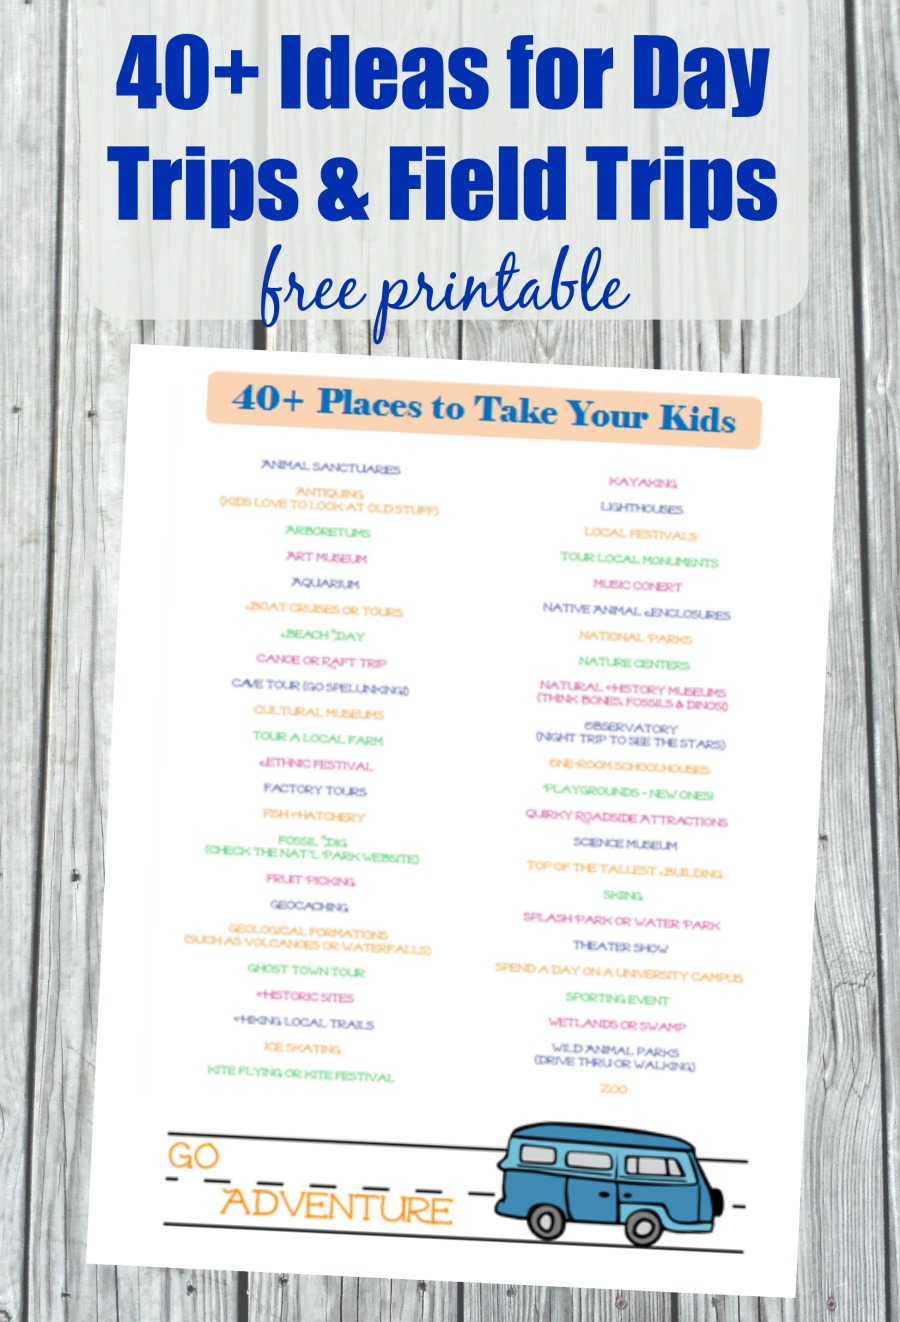 40 Fun Places to Go Near Me - free printable list of places to take kids